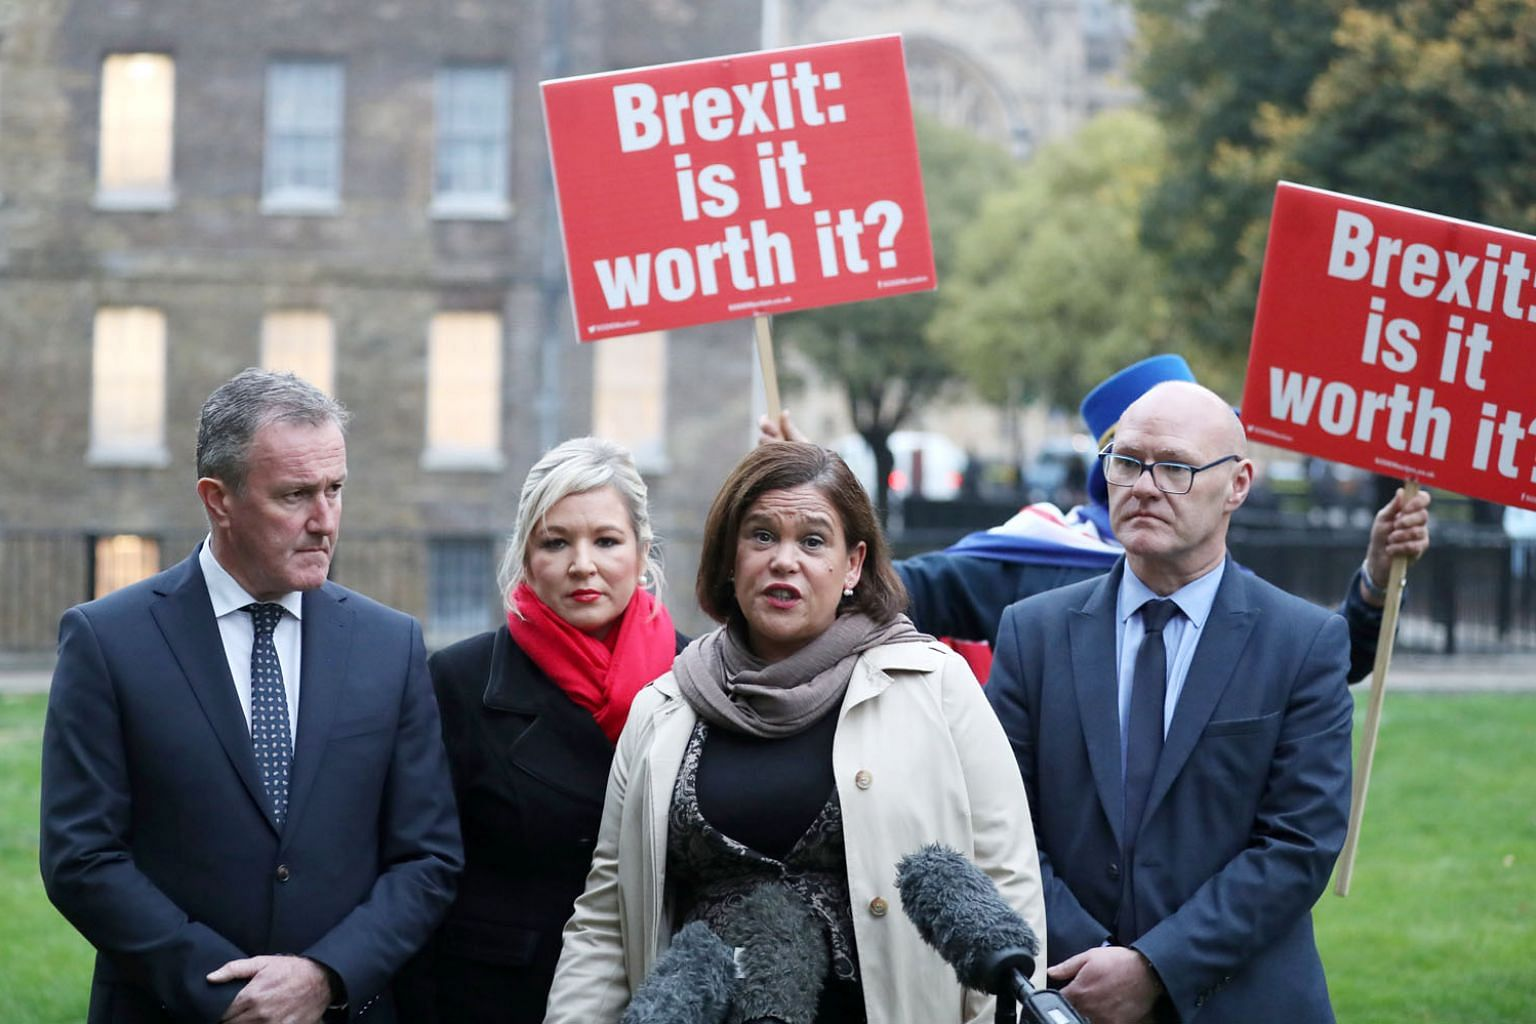 Northern Ireland's Sinn Fein leader Mary Lou McDonald speaking to journalists on Monday before a meeting with Britain's Prime Minister Theresa May in London as talks on a Brexit deal with the EU remain deadlocked.